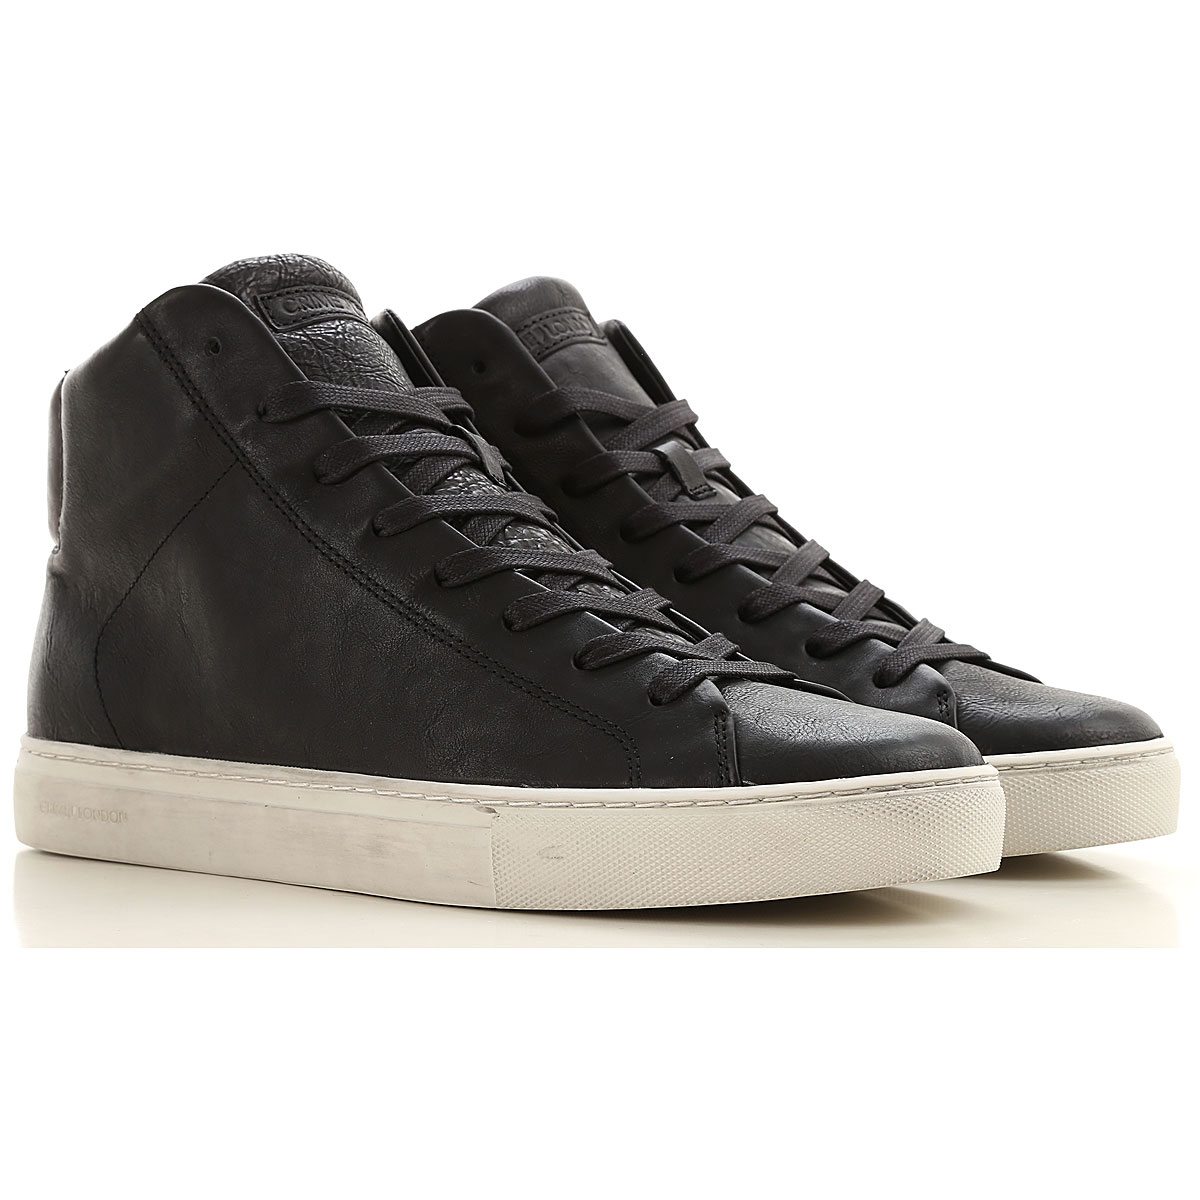 Crime Sneakers for Men On Sale, Black, Leather, 2019, 10.5 11.5 7.5 8 9